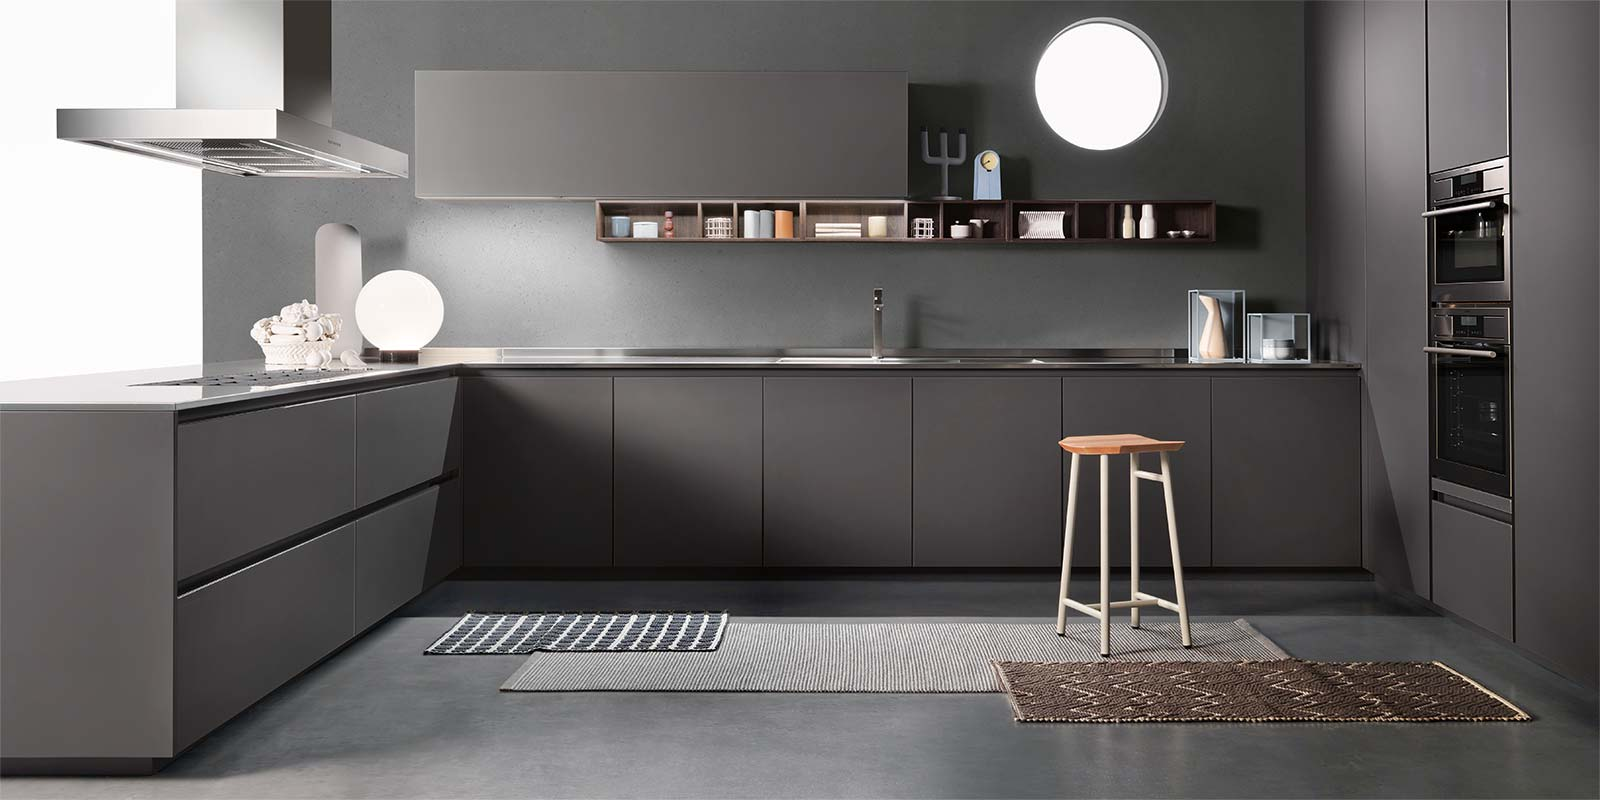 Cucine ernestomeda roma for Finestra obliqua